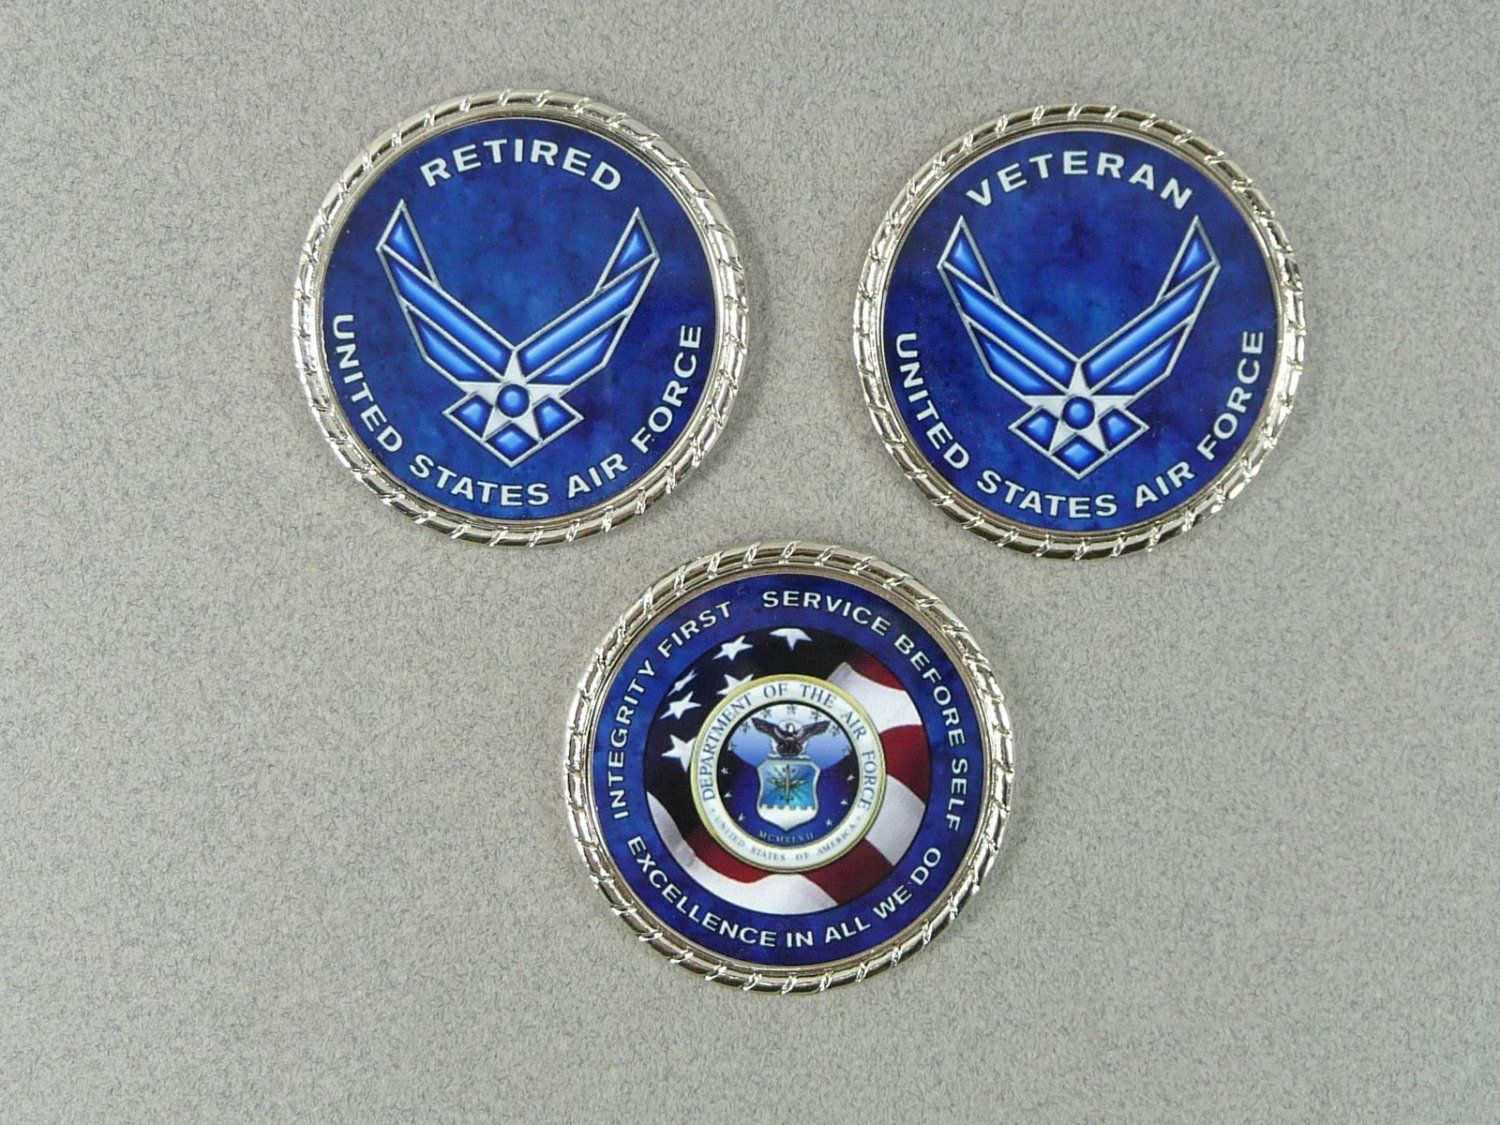 AIR FORCE COIN Retired Veteran Challenge Coin Retirement